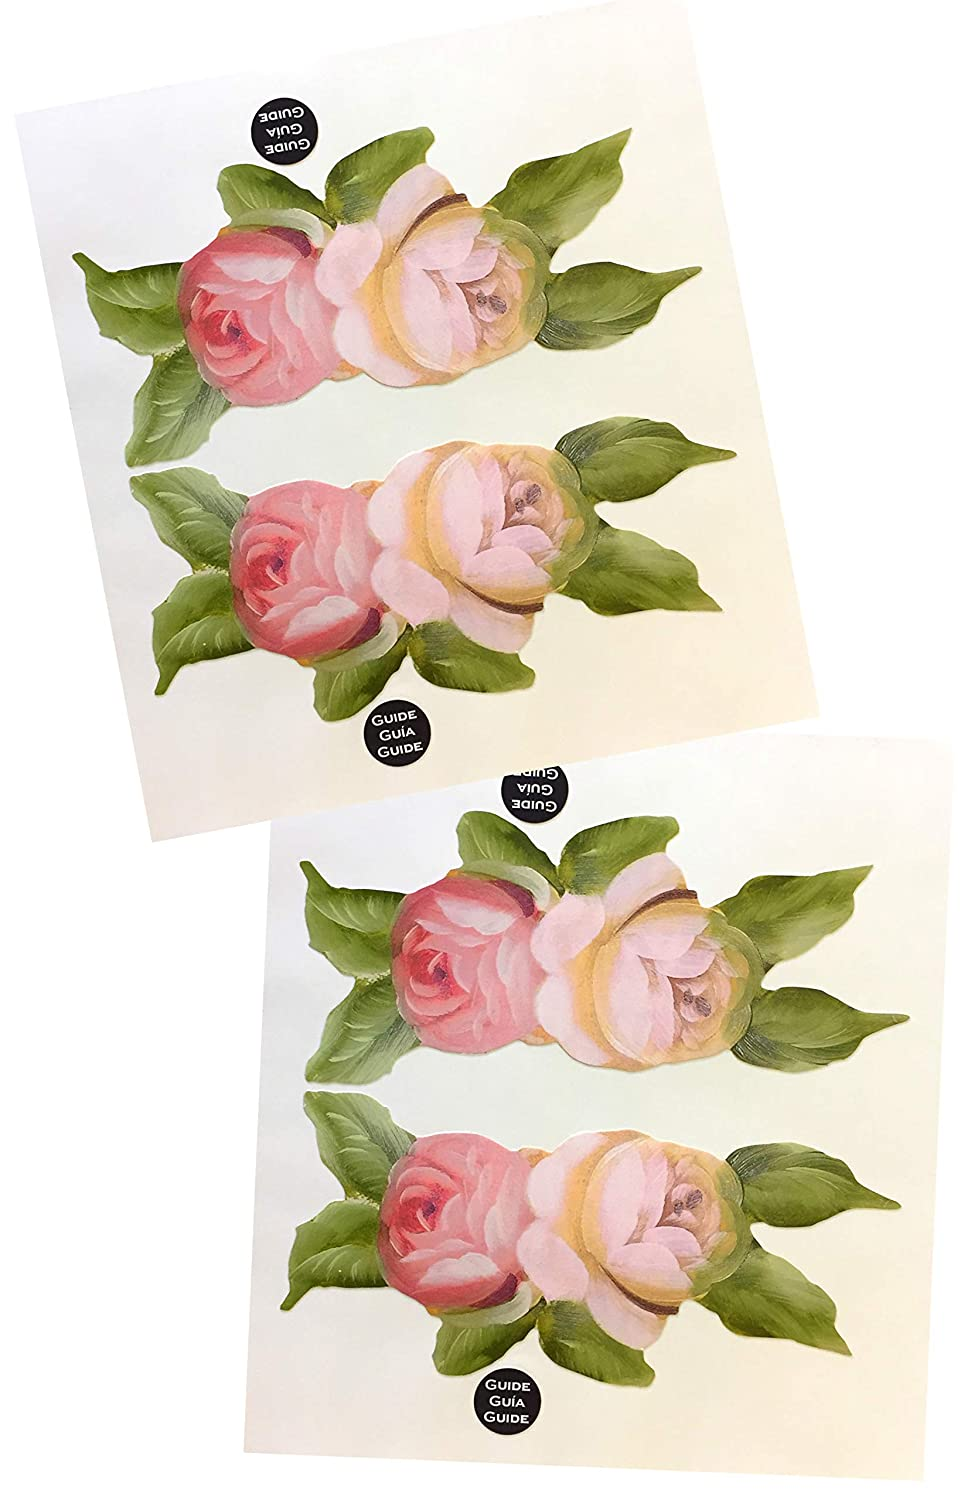 Ka mixer decal cover kit 2x victorian vintage rose flower double stickers red pink cream and white designed to fit all kitchenaid stand mixers mixer